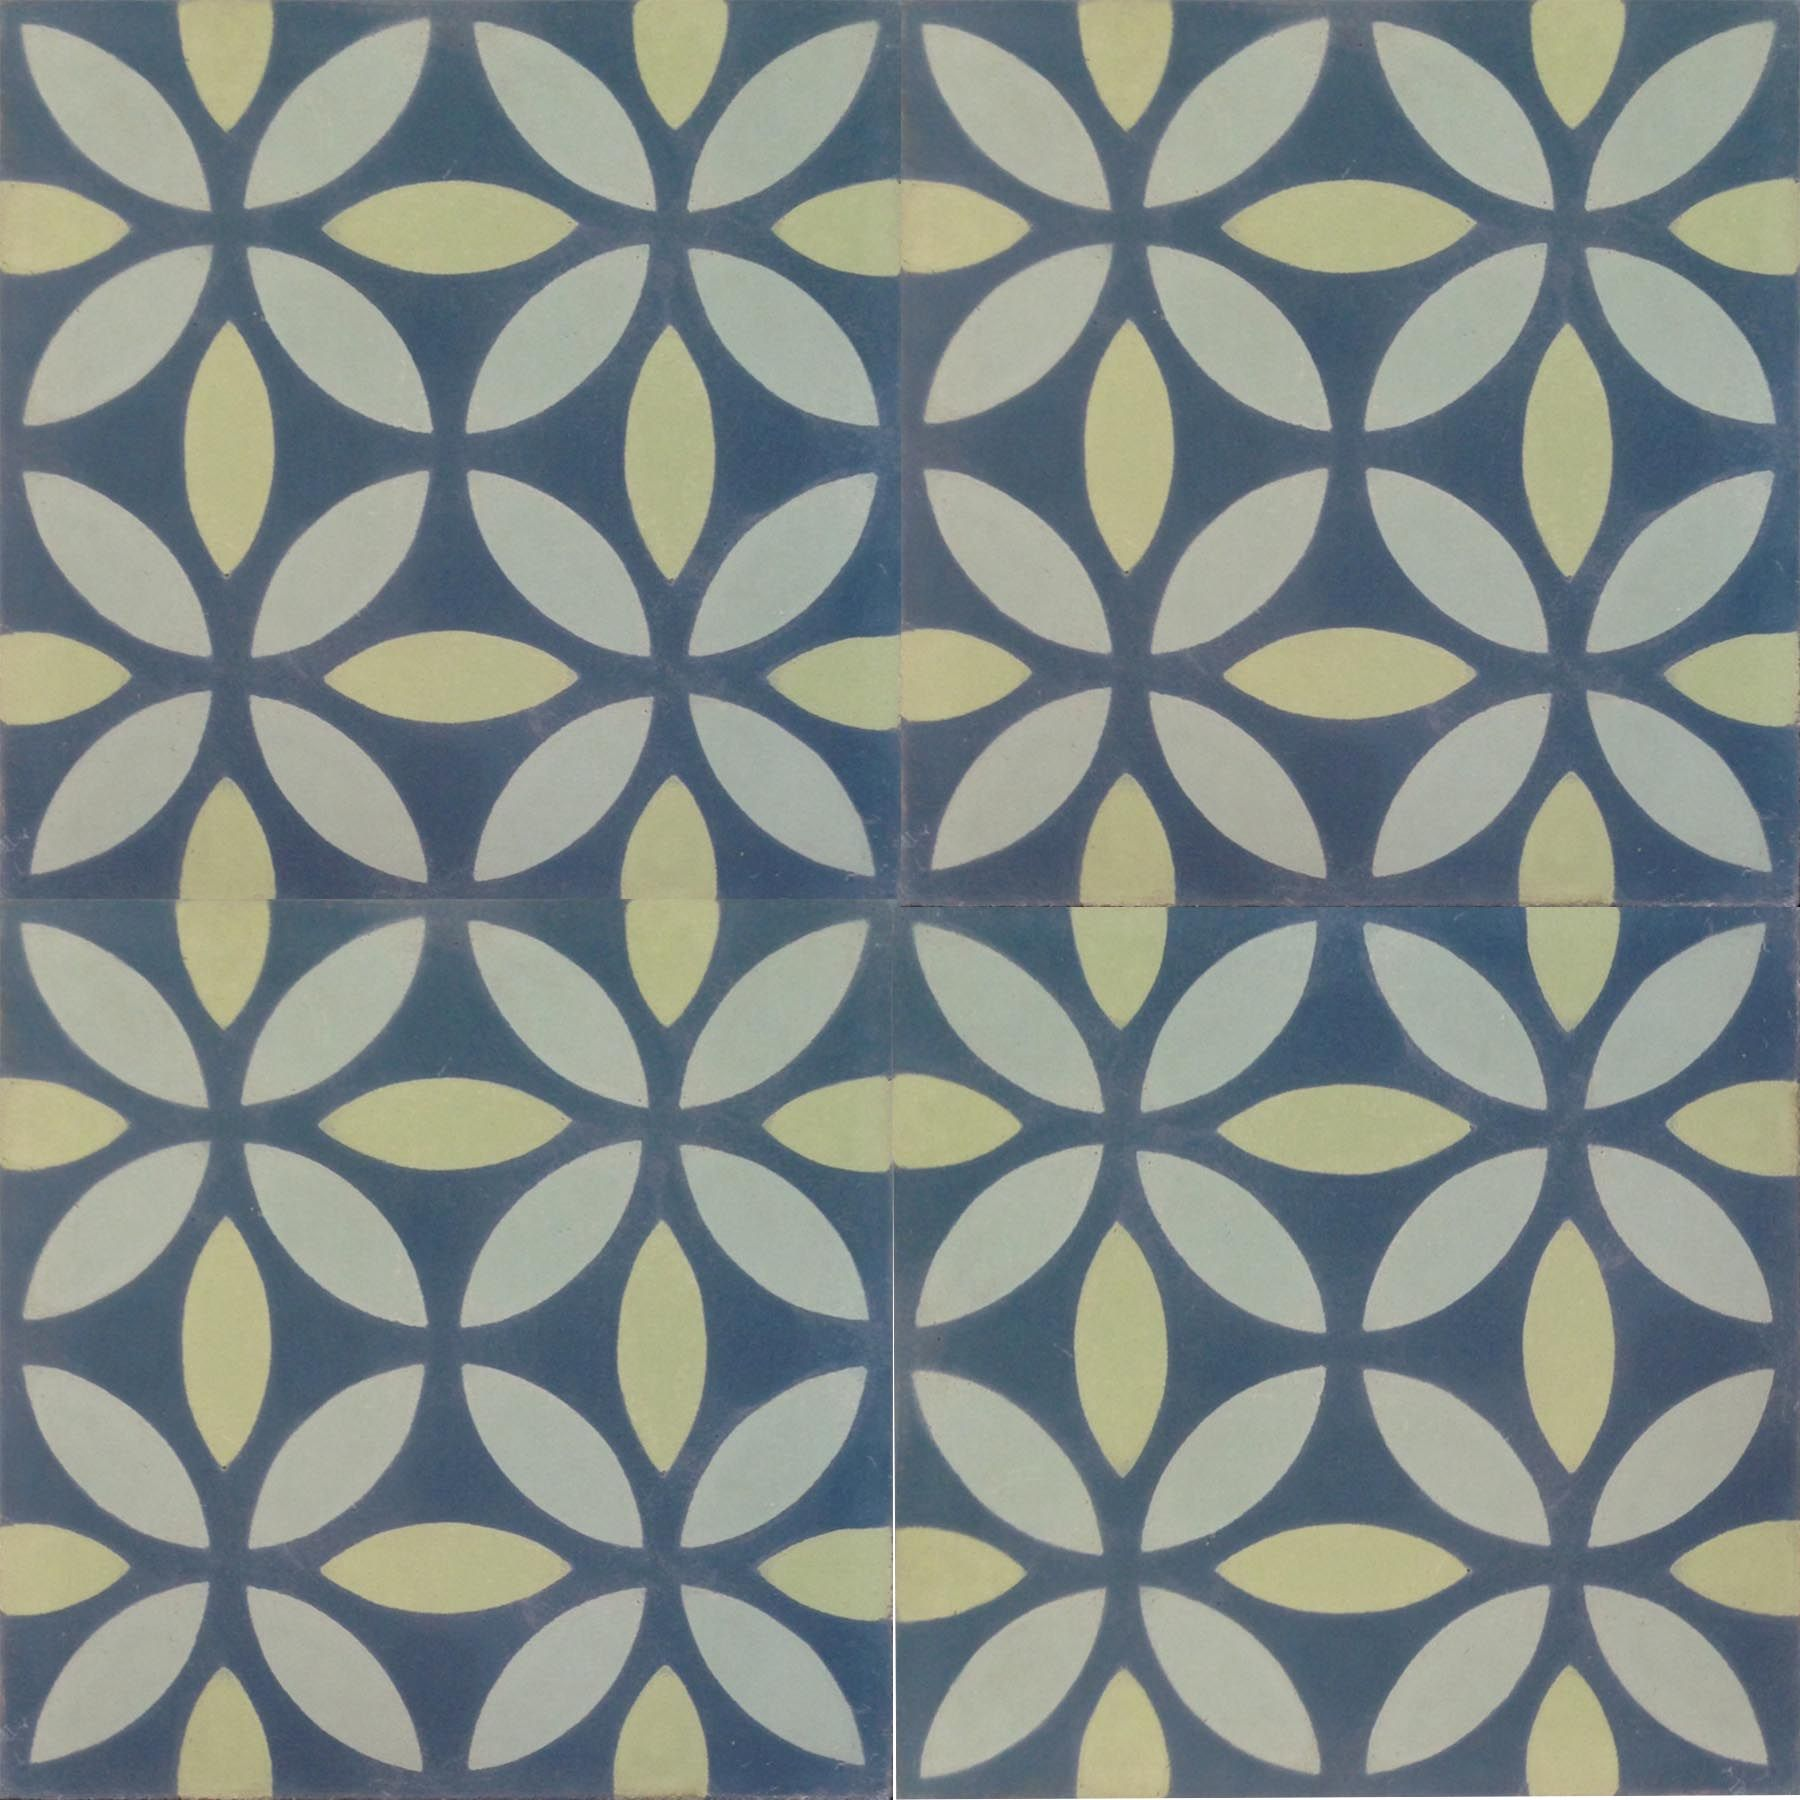 Petals blue green encaustic tile httpencaustic tiles a unique range of encaustic tiles cement tiles moroccan handmade and hydraulically pressed stock designs a unique range of encaustic tiles dailygadgetfo Gallery